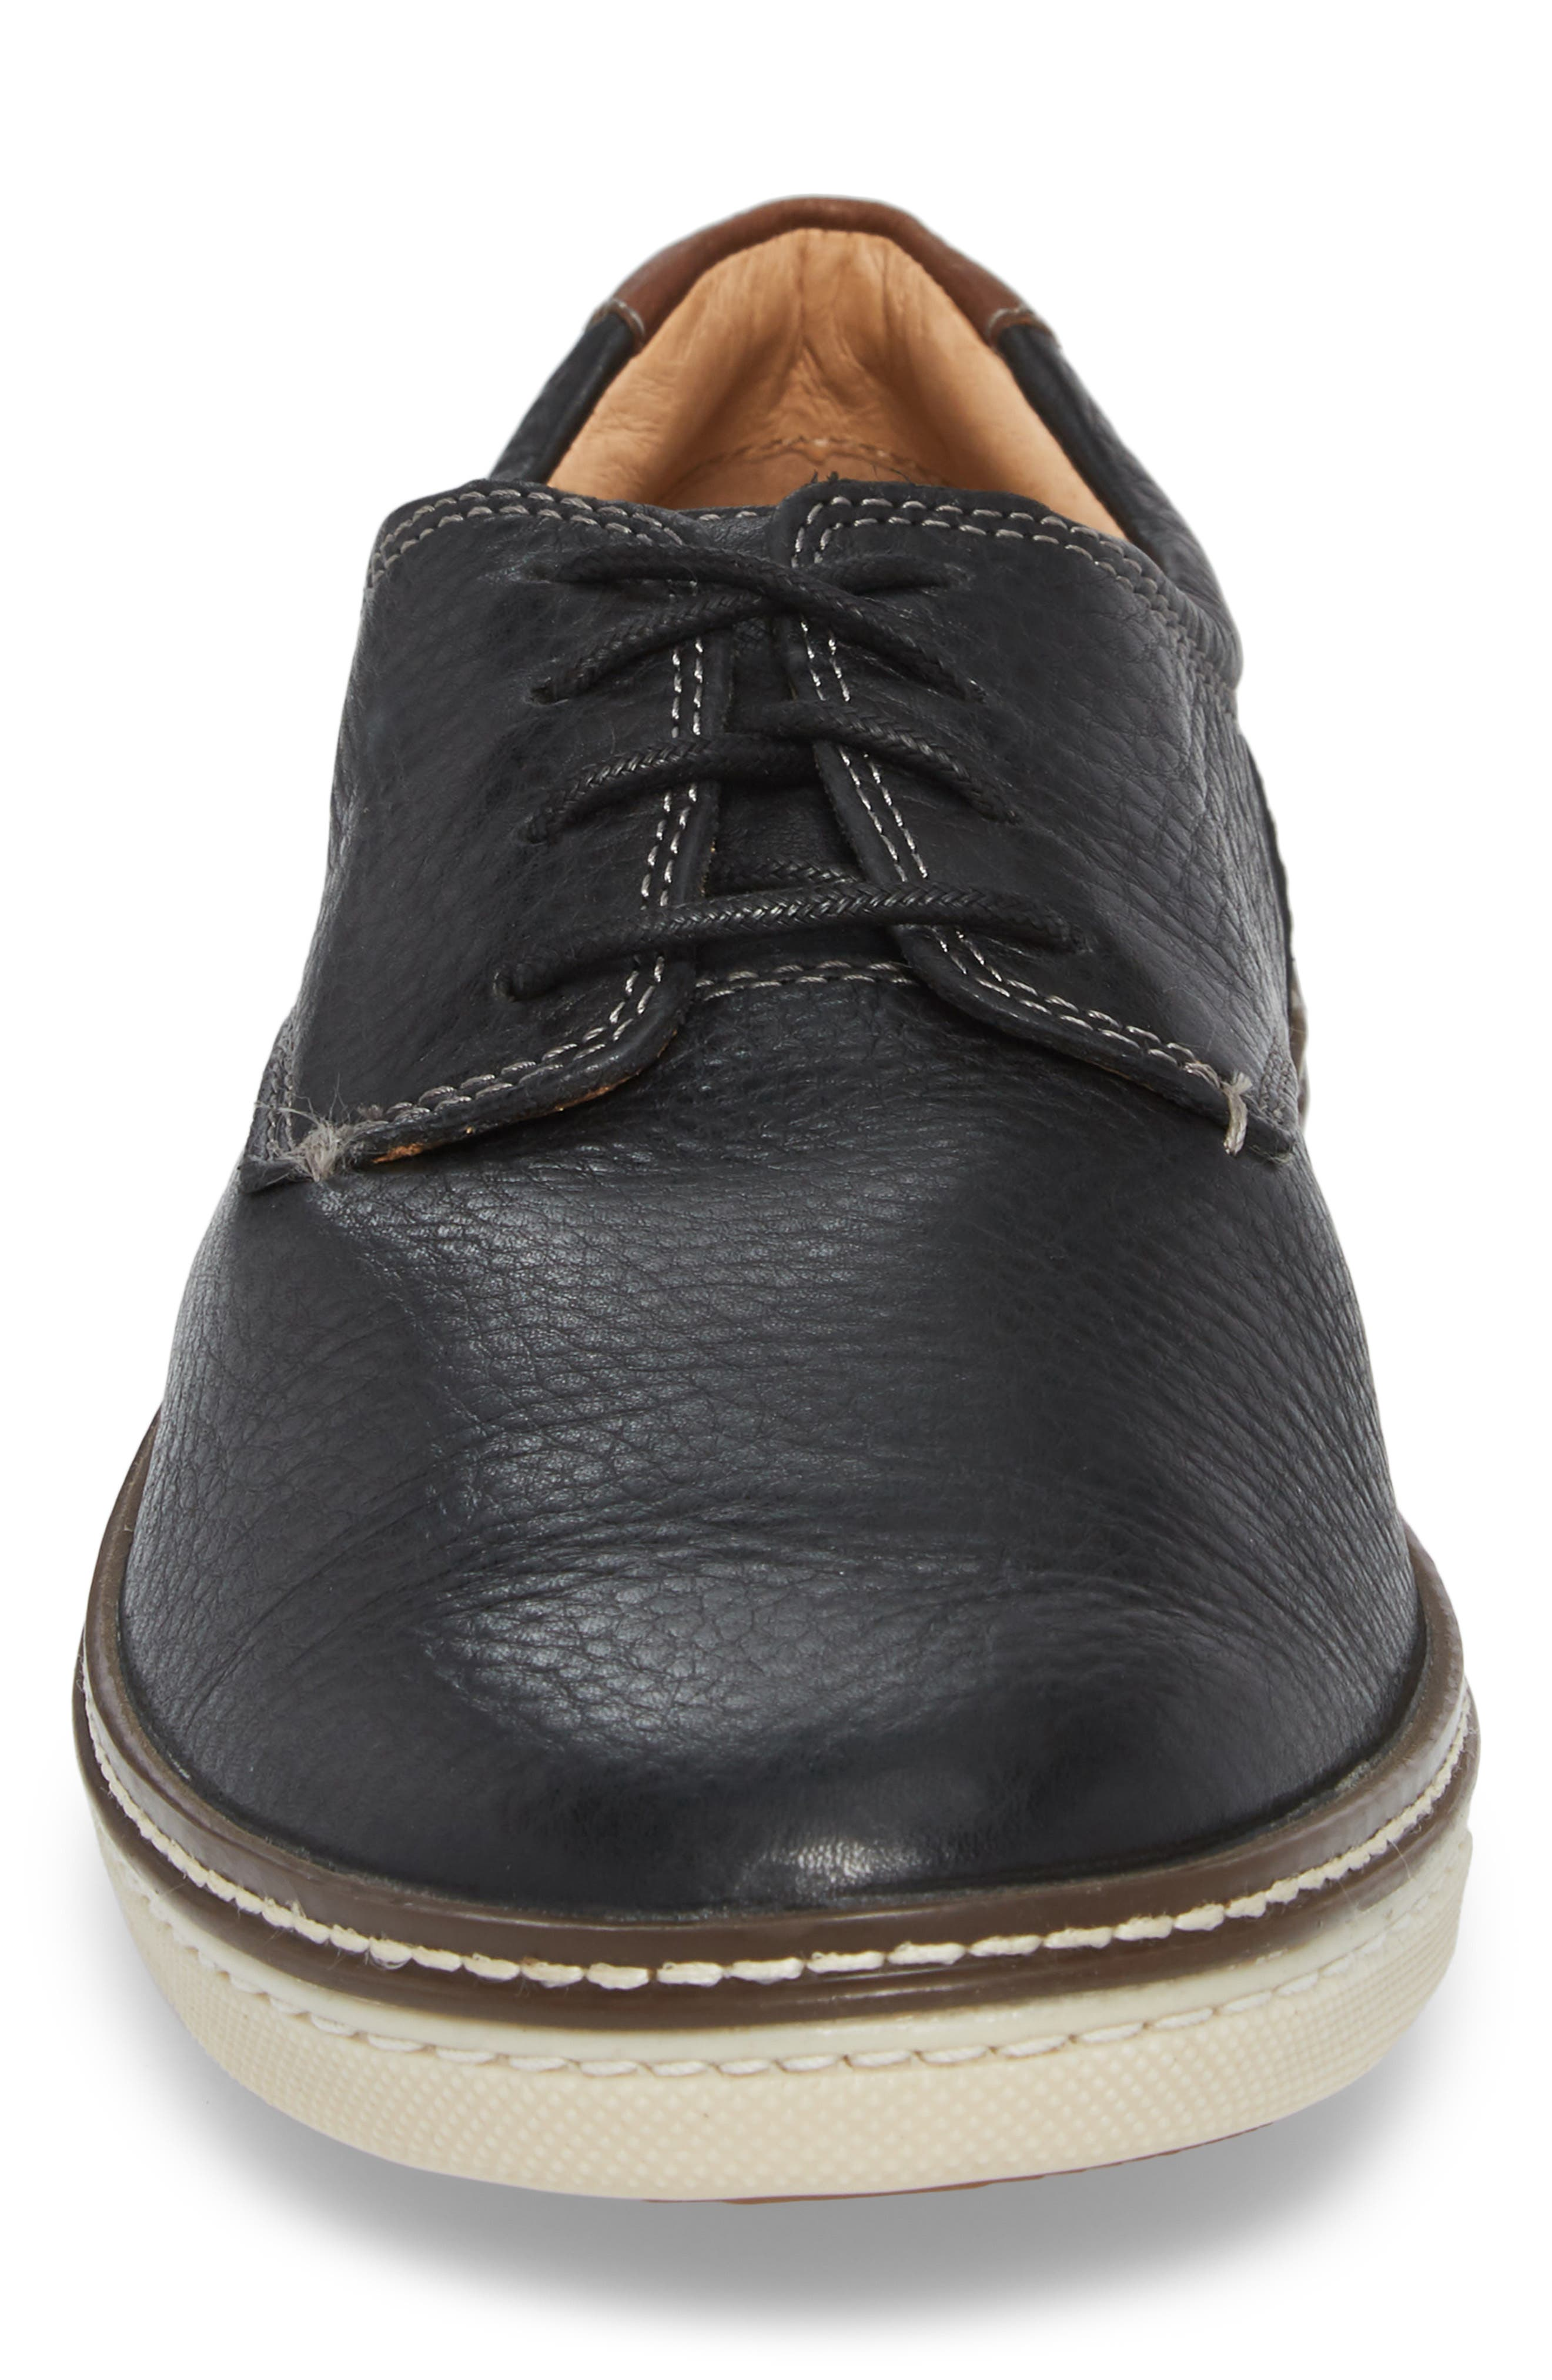 McGuffey Derby Sneaker,                             Alternate thumbnail 4, color,                             Black Leather